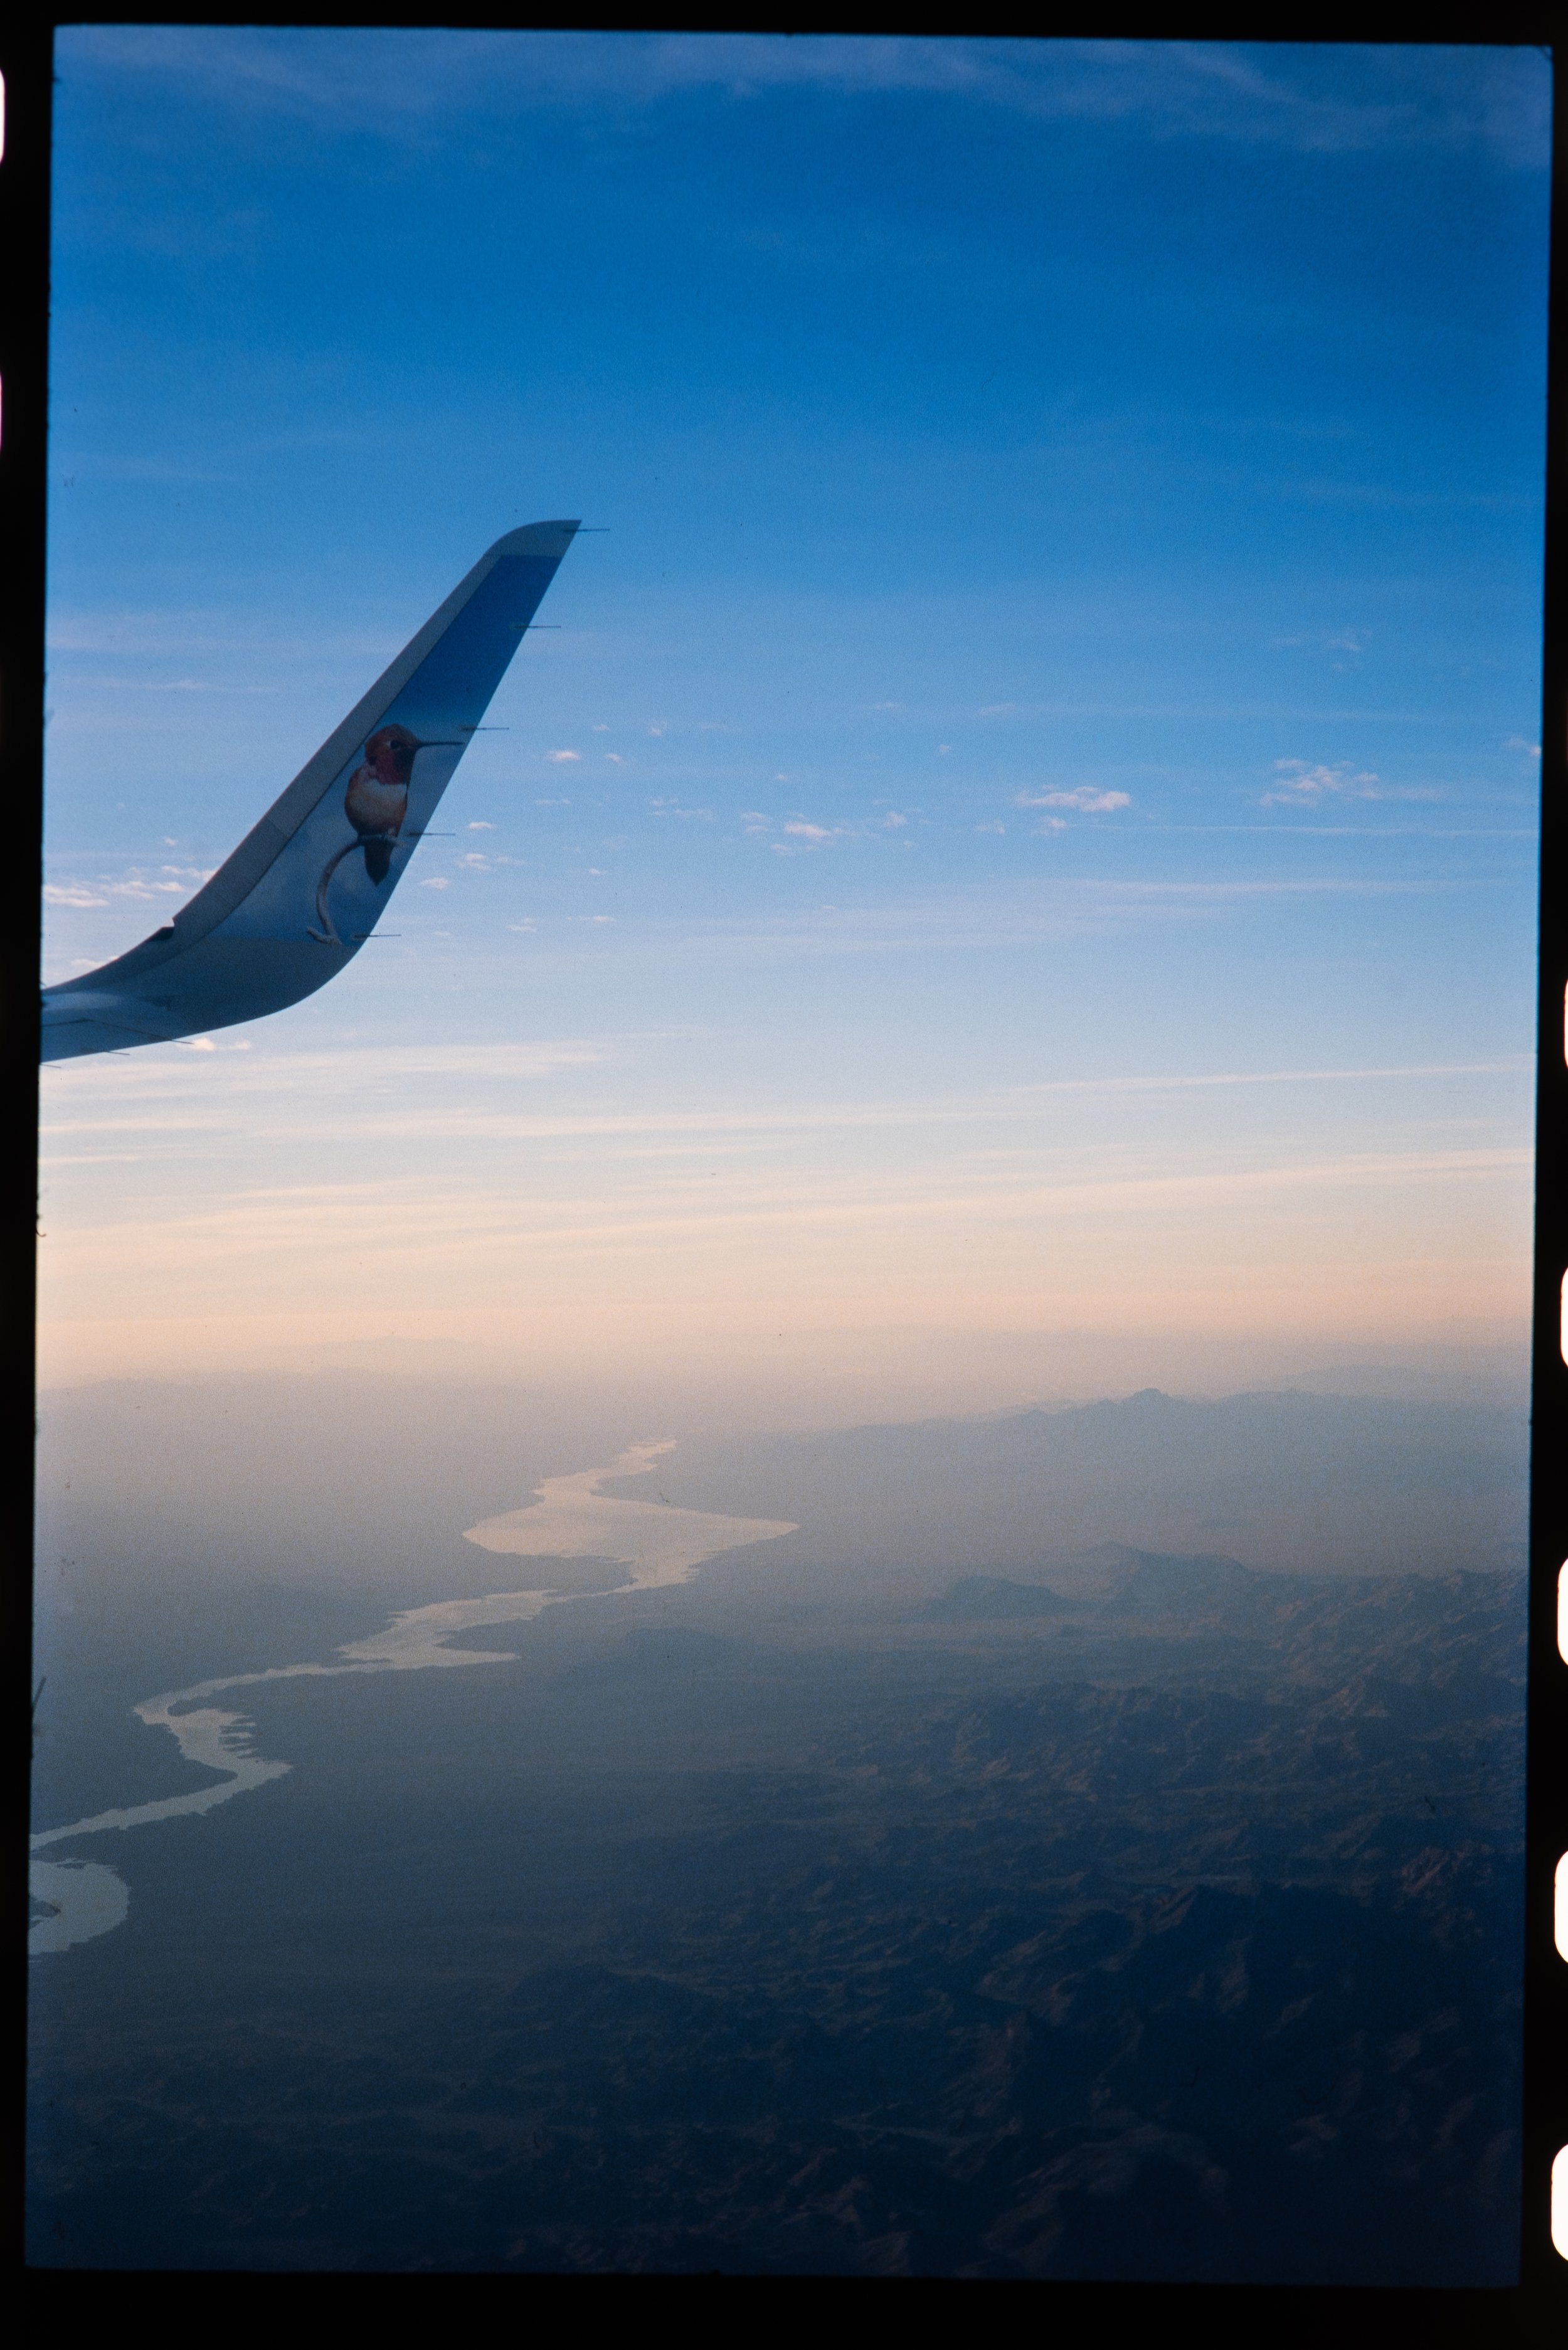 This wouldn't be a post about travel and simplifying without a photo of some plane wings. -